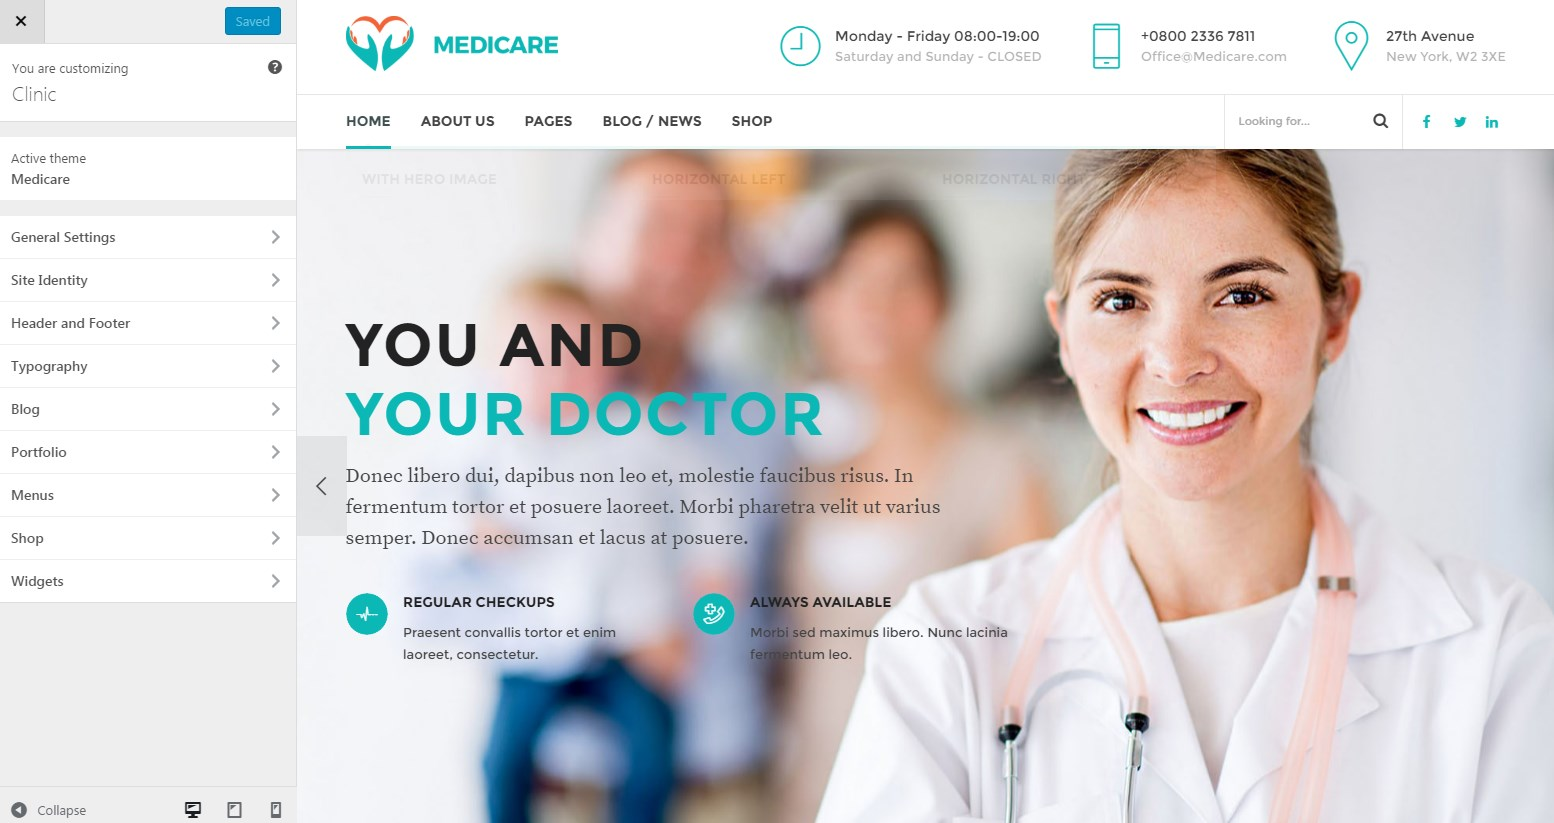 http://documentation.bold-themes.com/medicare/wp-content/uploads/sites/3/2016/10/10a.jpg